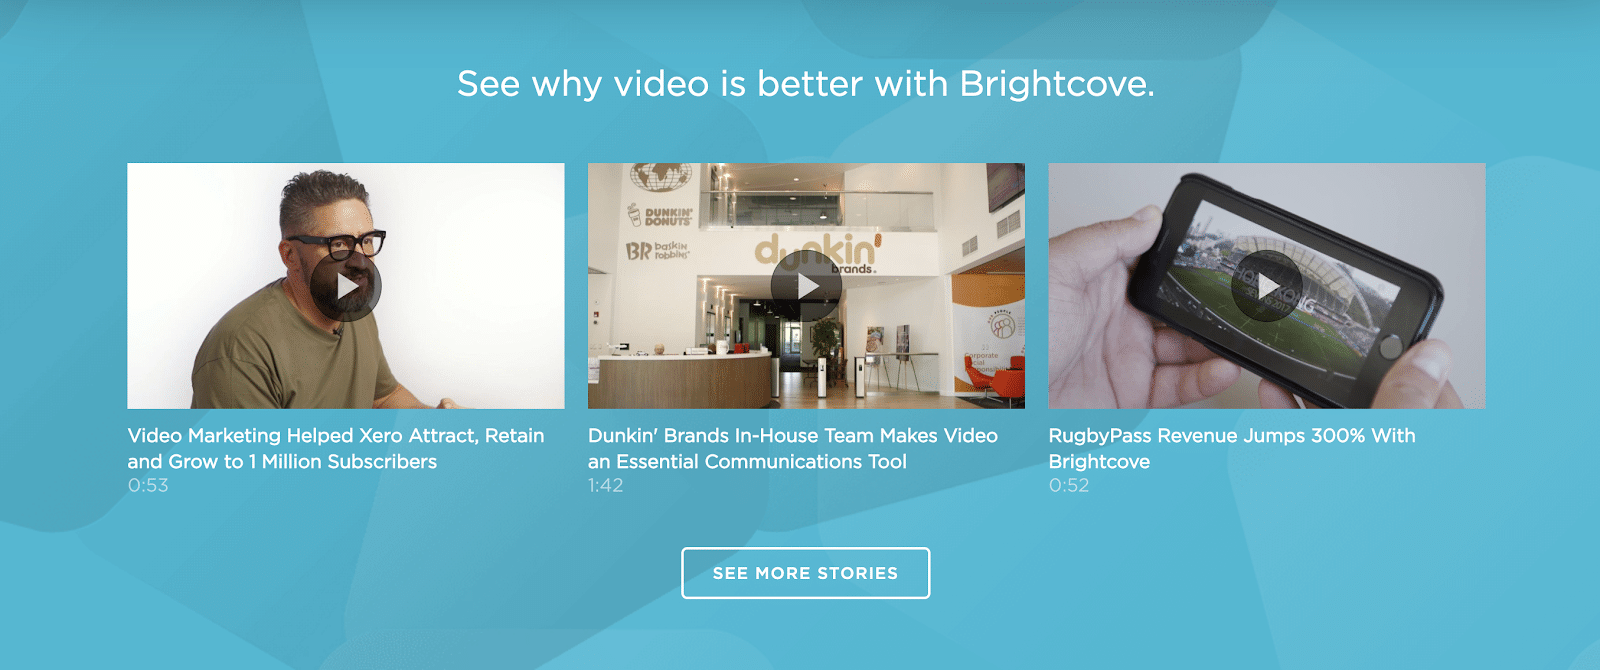 Brightcove differentiates itself in the level of control it offers with its video hosting capabilities.